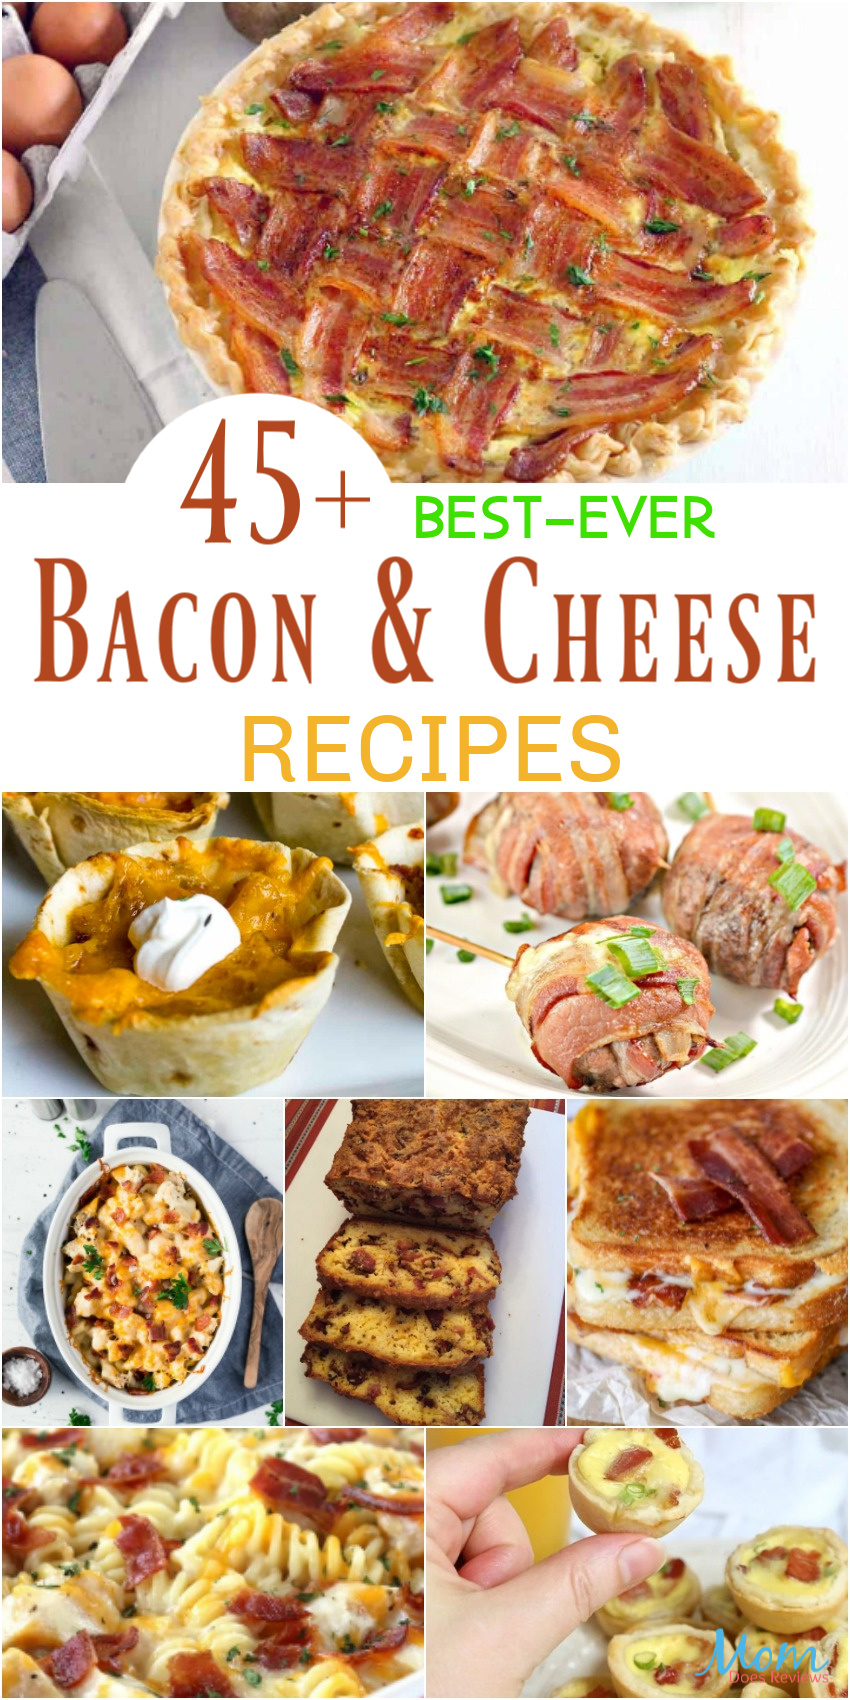 45+ Best-Ever Bacon & Cheese Recipes That Will Make You Drool #food #recipes #bacon